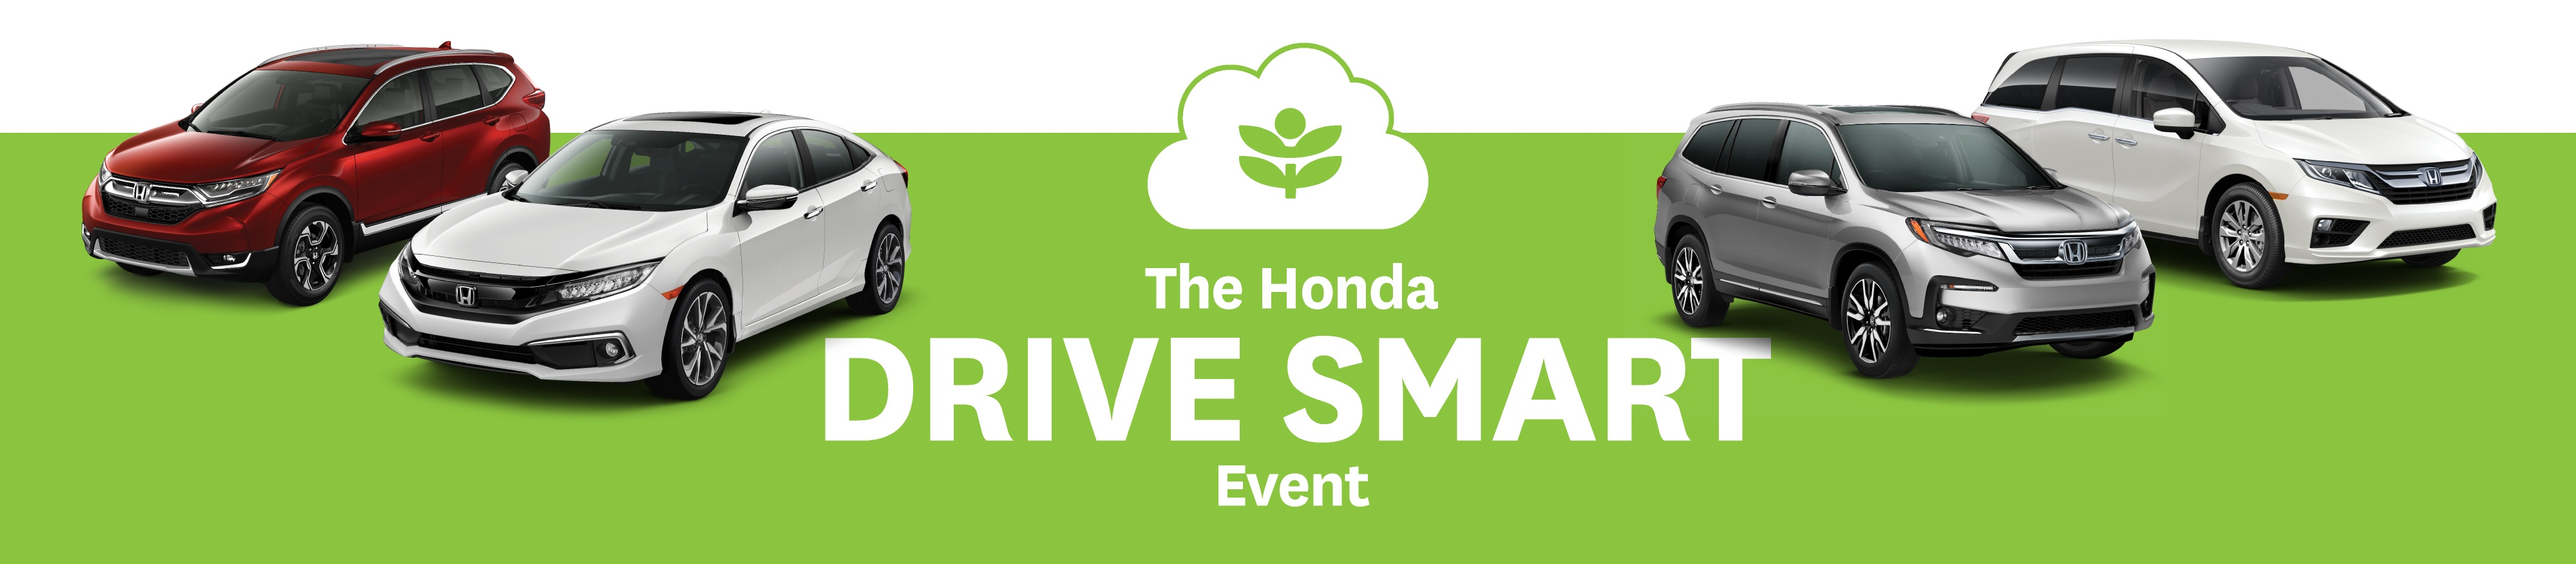 The Honda Drive Smart Event